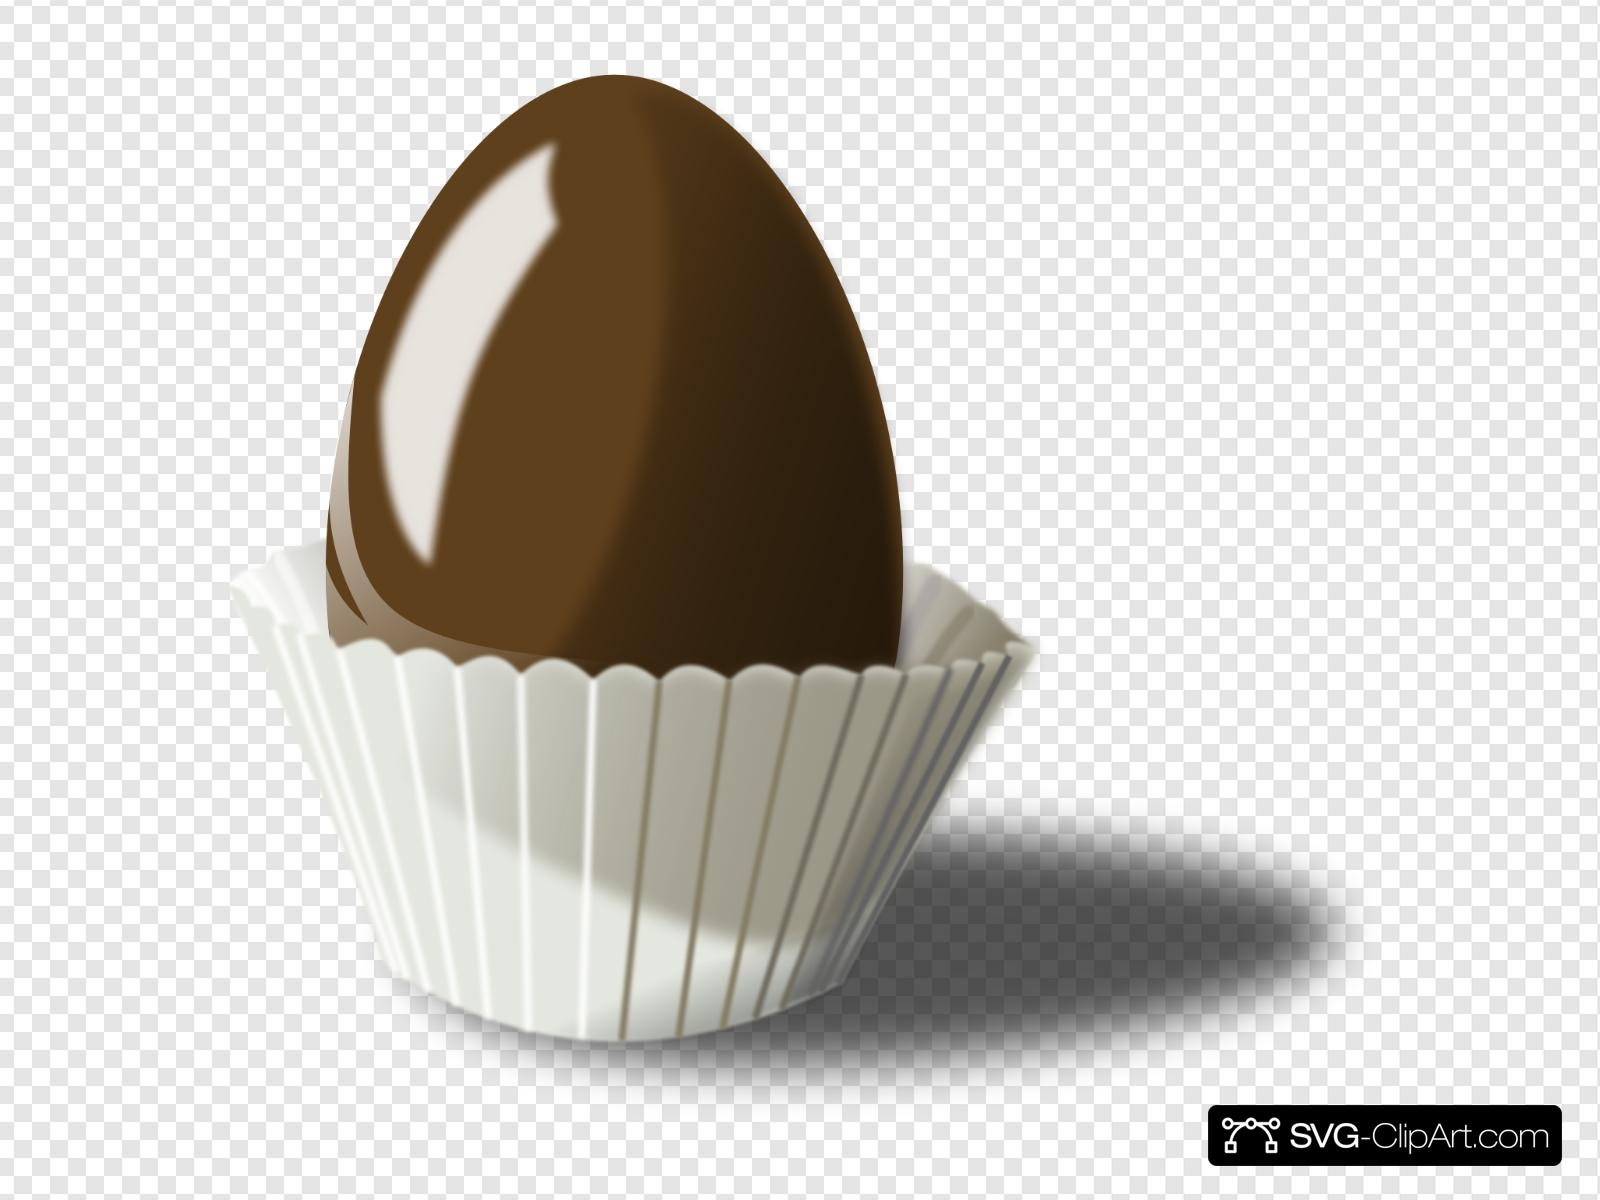 Chocolate Easter Egg Clip art, Icon and SVG.